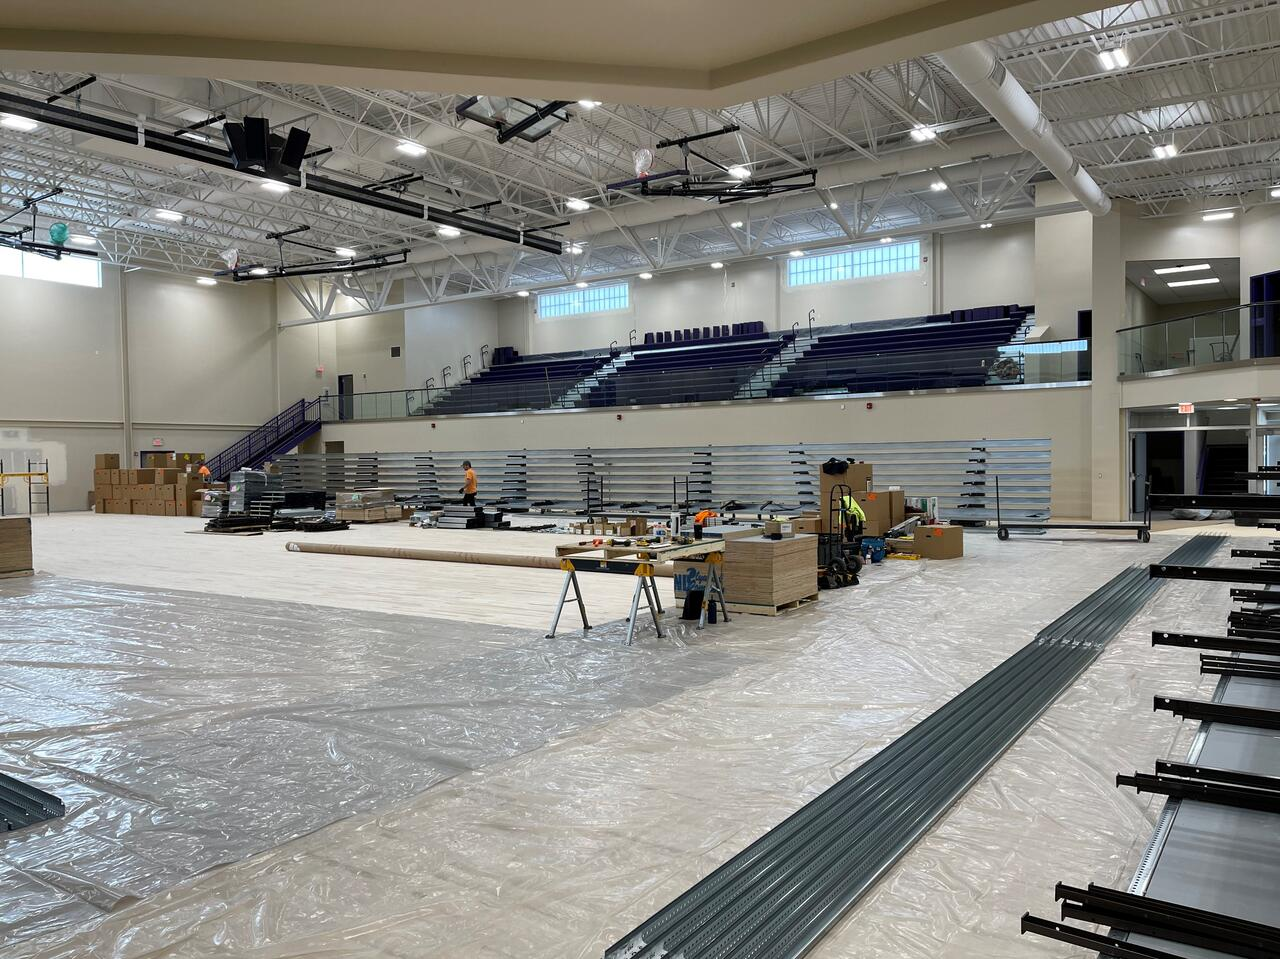 Linderman Gym Construction Pictures